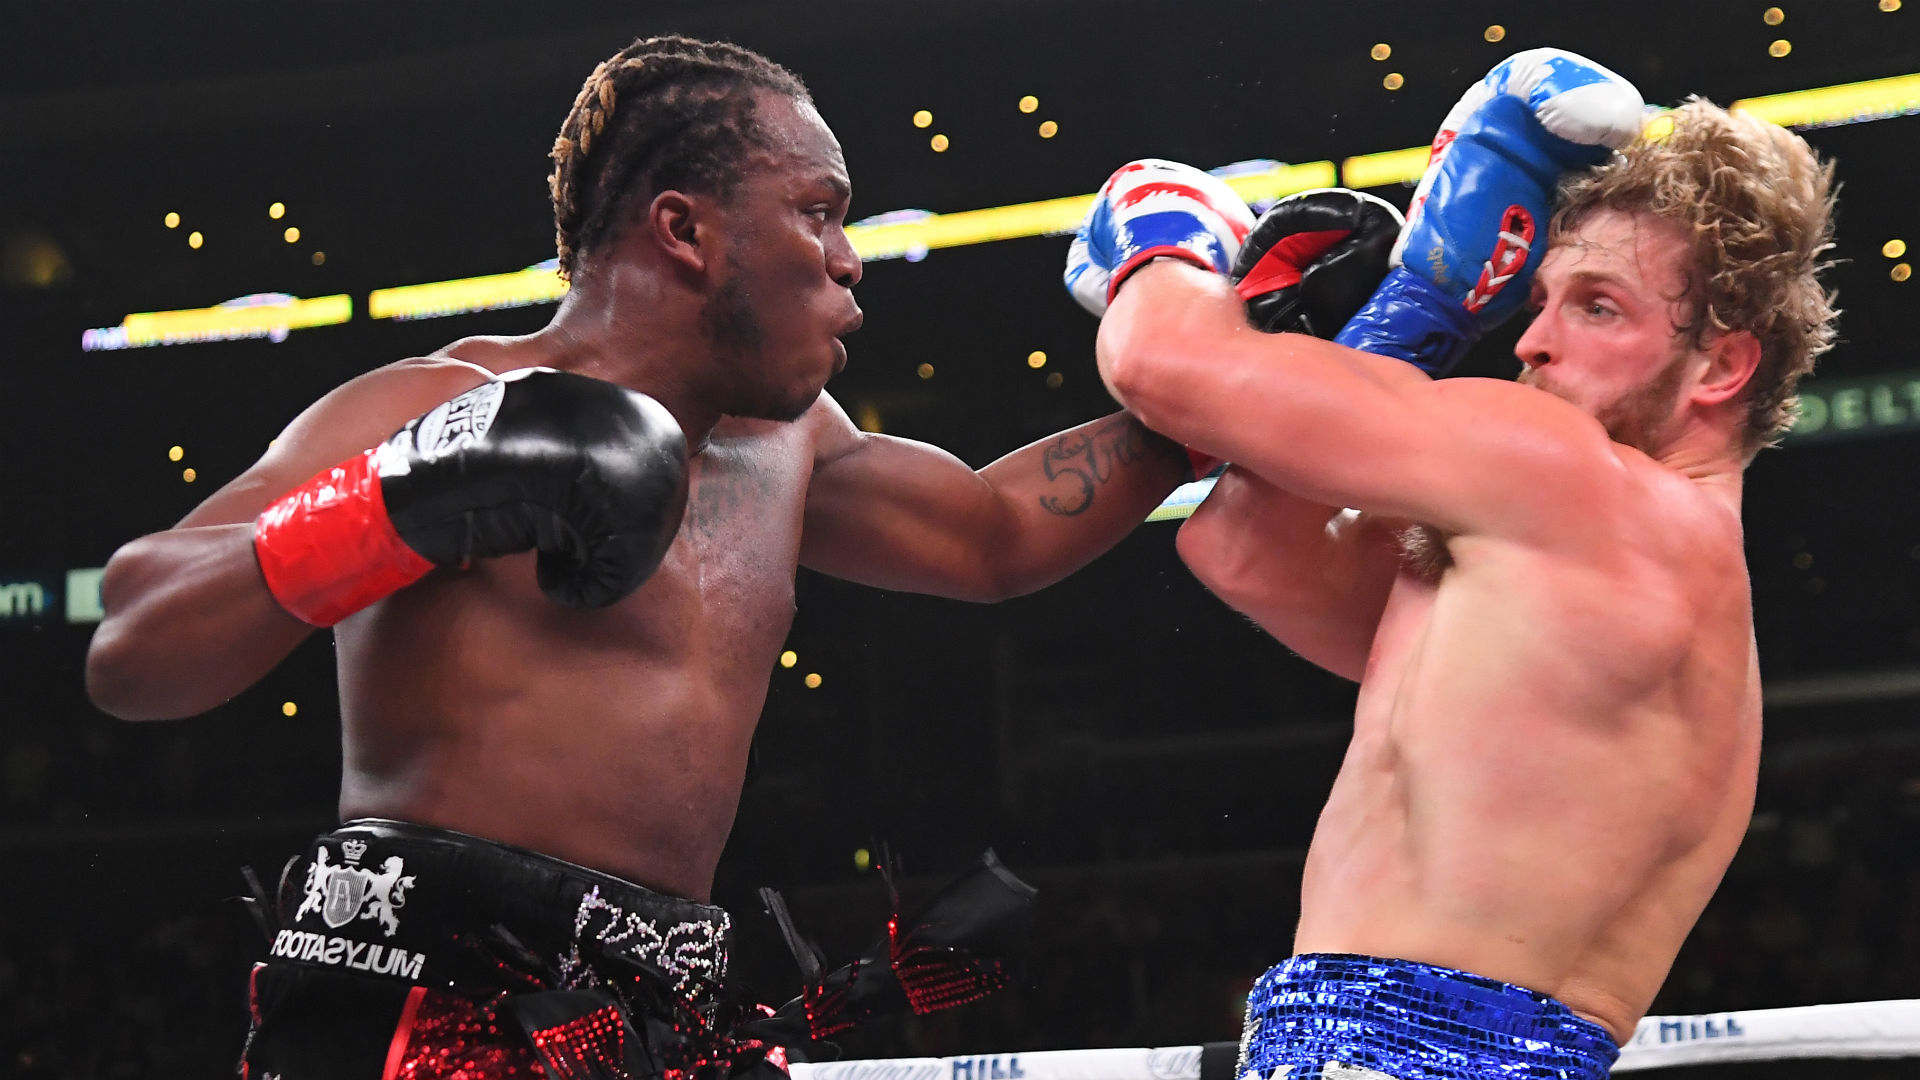 Logan Paul Vs Ksi 2 Results Ksi Wins After Critical Point Deduction For Paul Sporting News